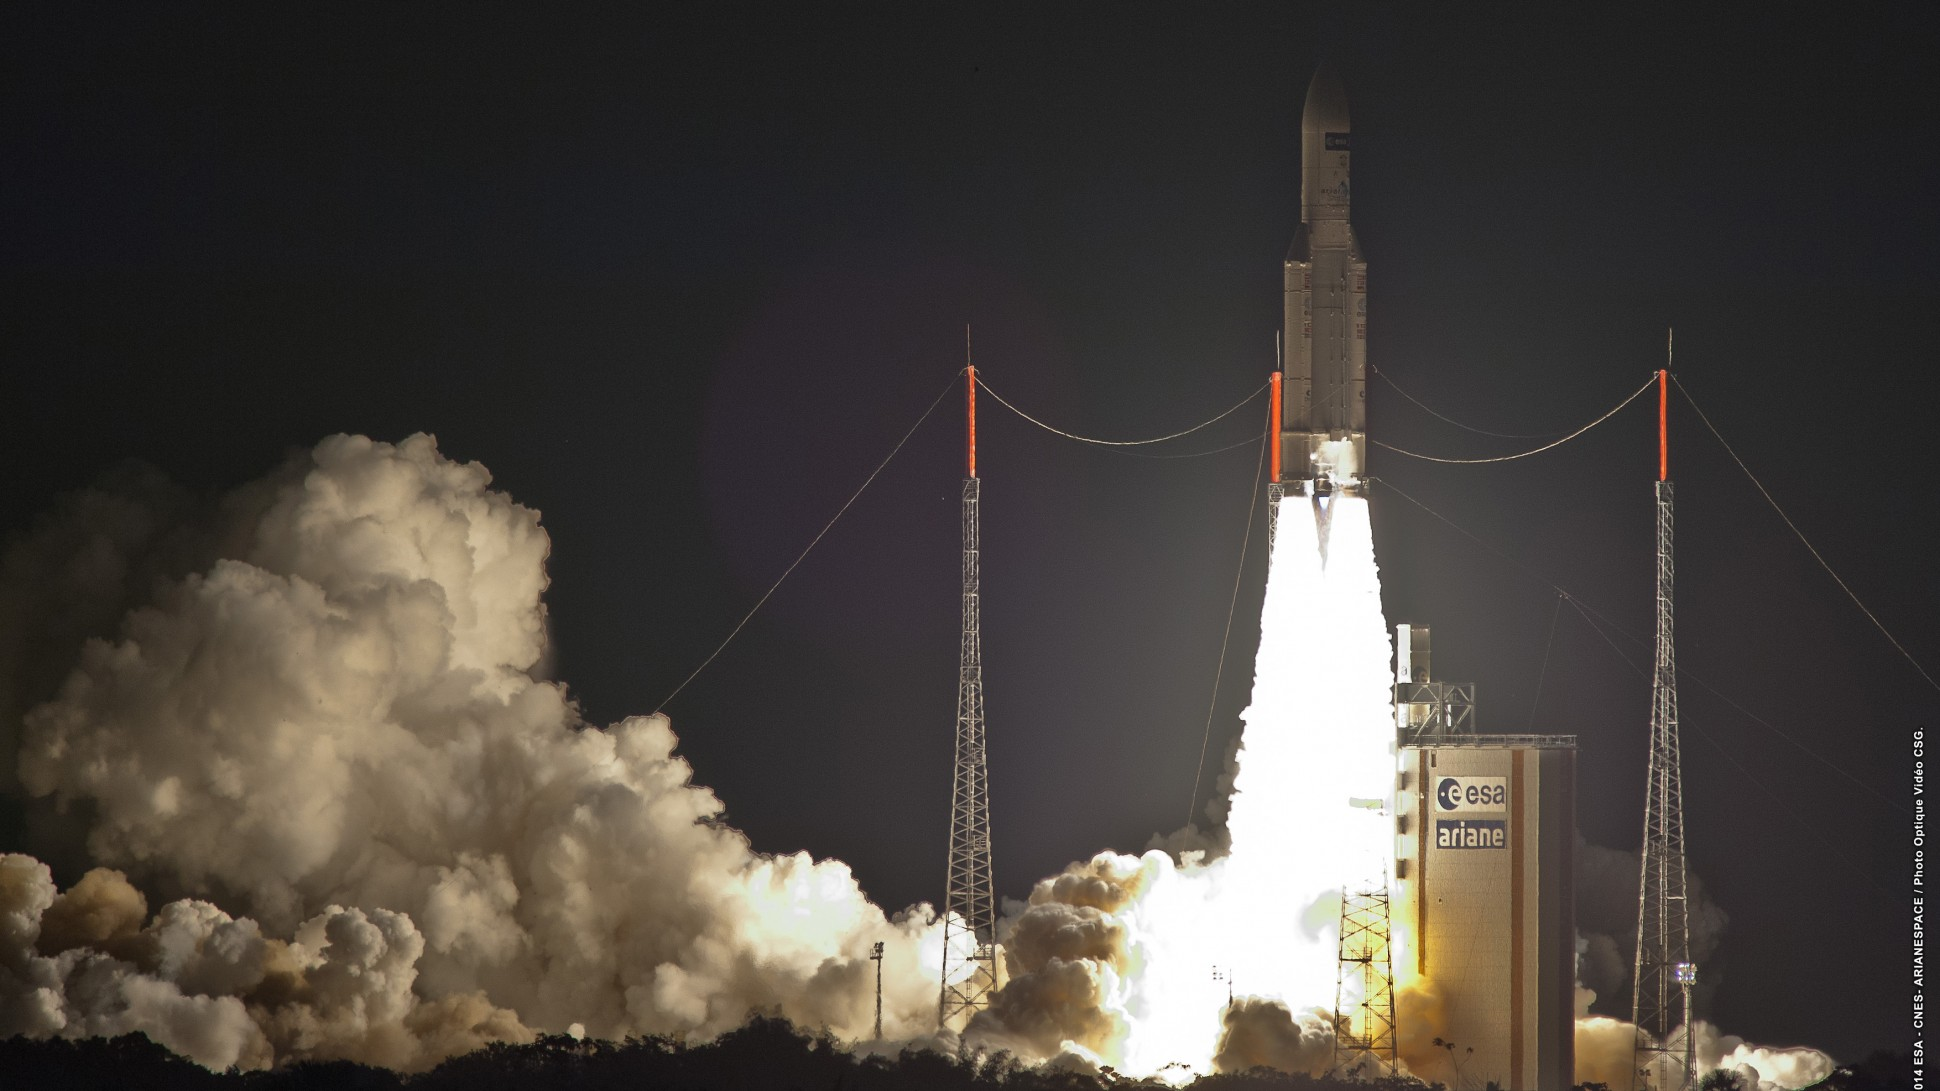 An Ariane V rocket lifts the ATV spaceward. Photo Credit: Arianespace